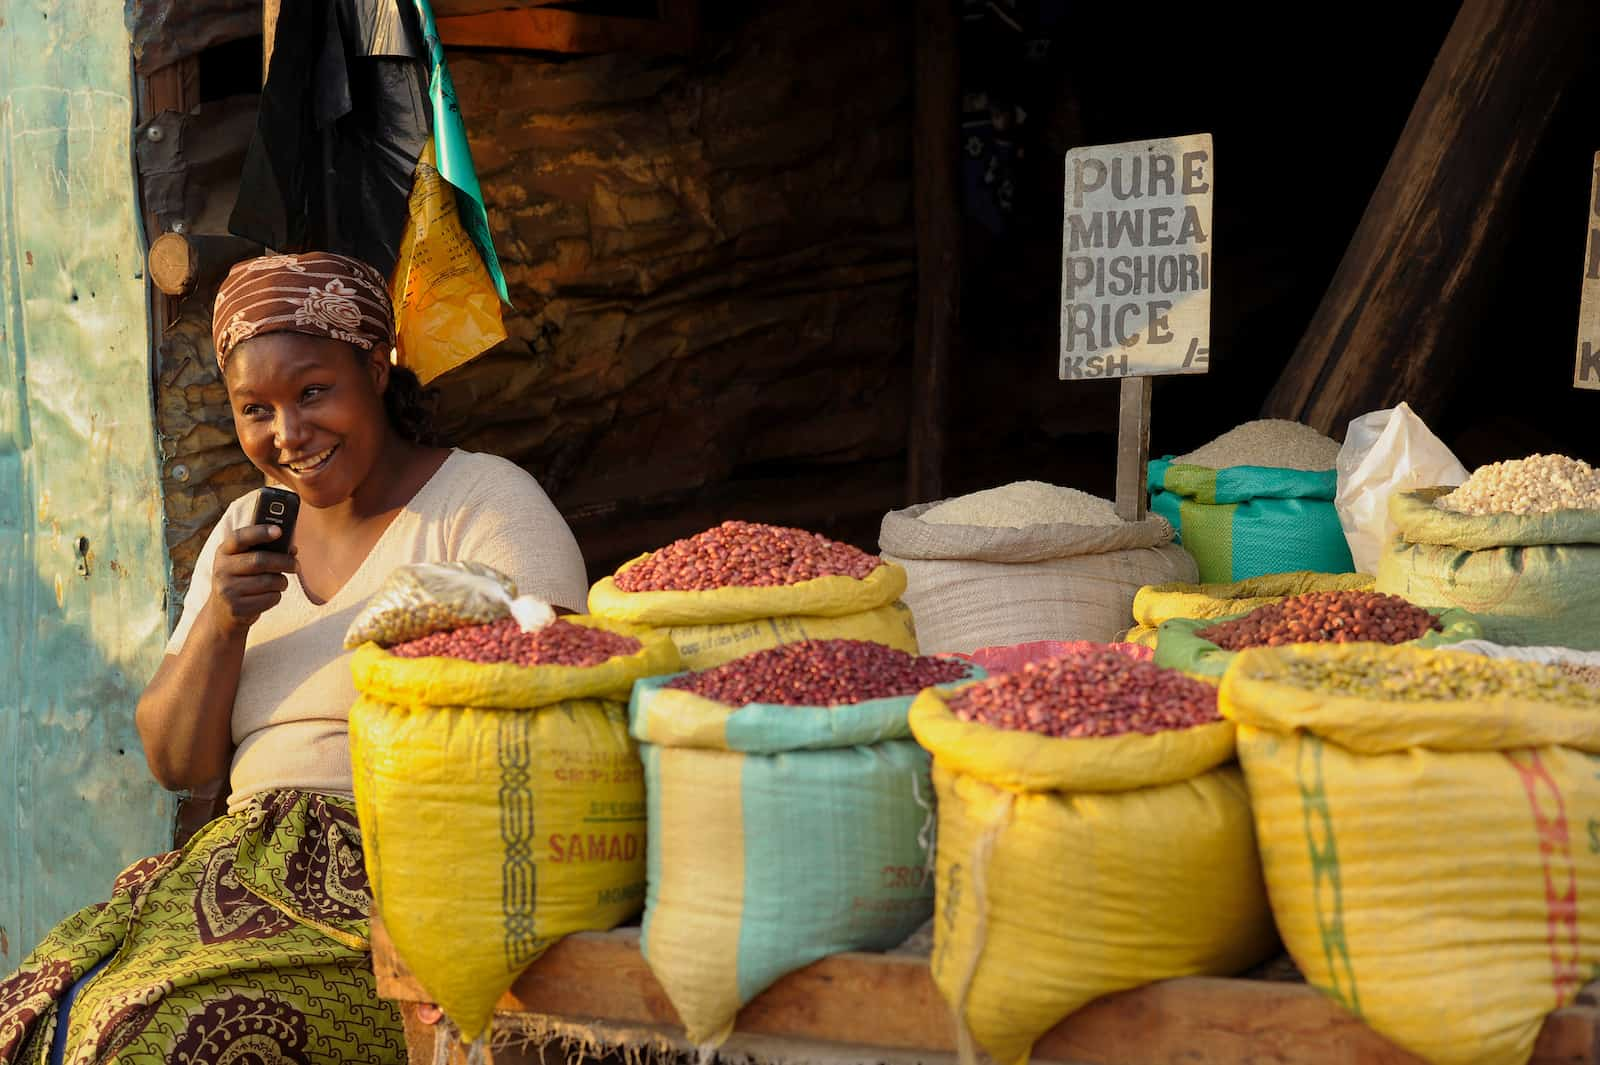 A woman selling beans on a street in Kibera, where some people go for poverty tourism.